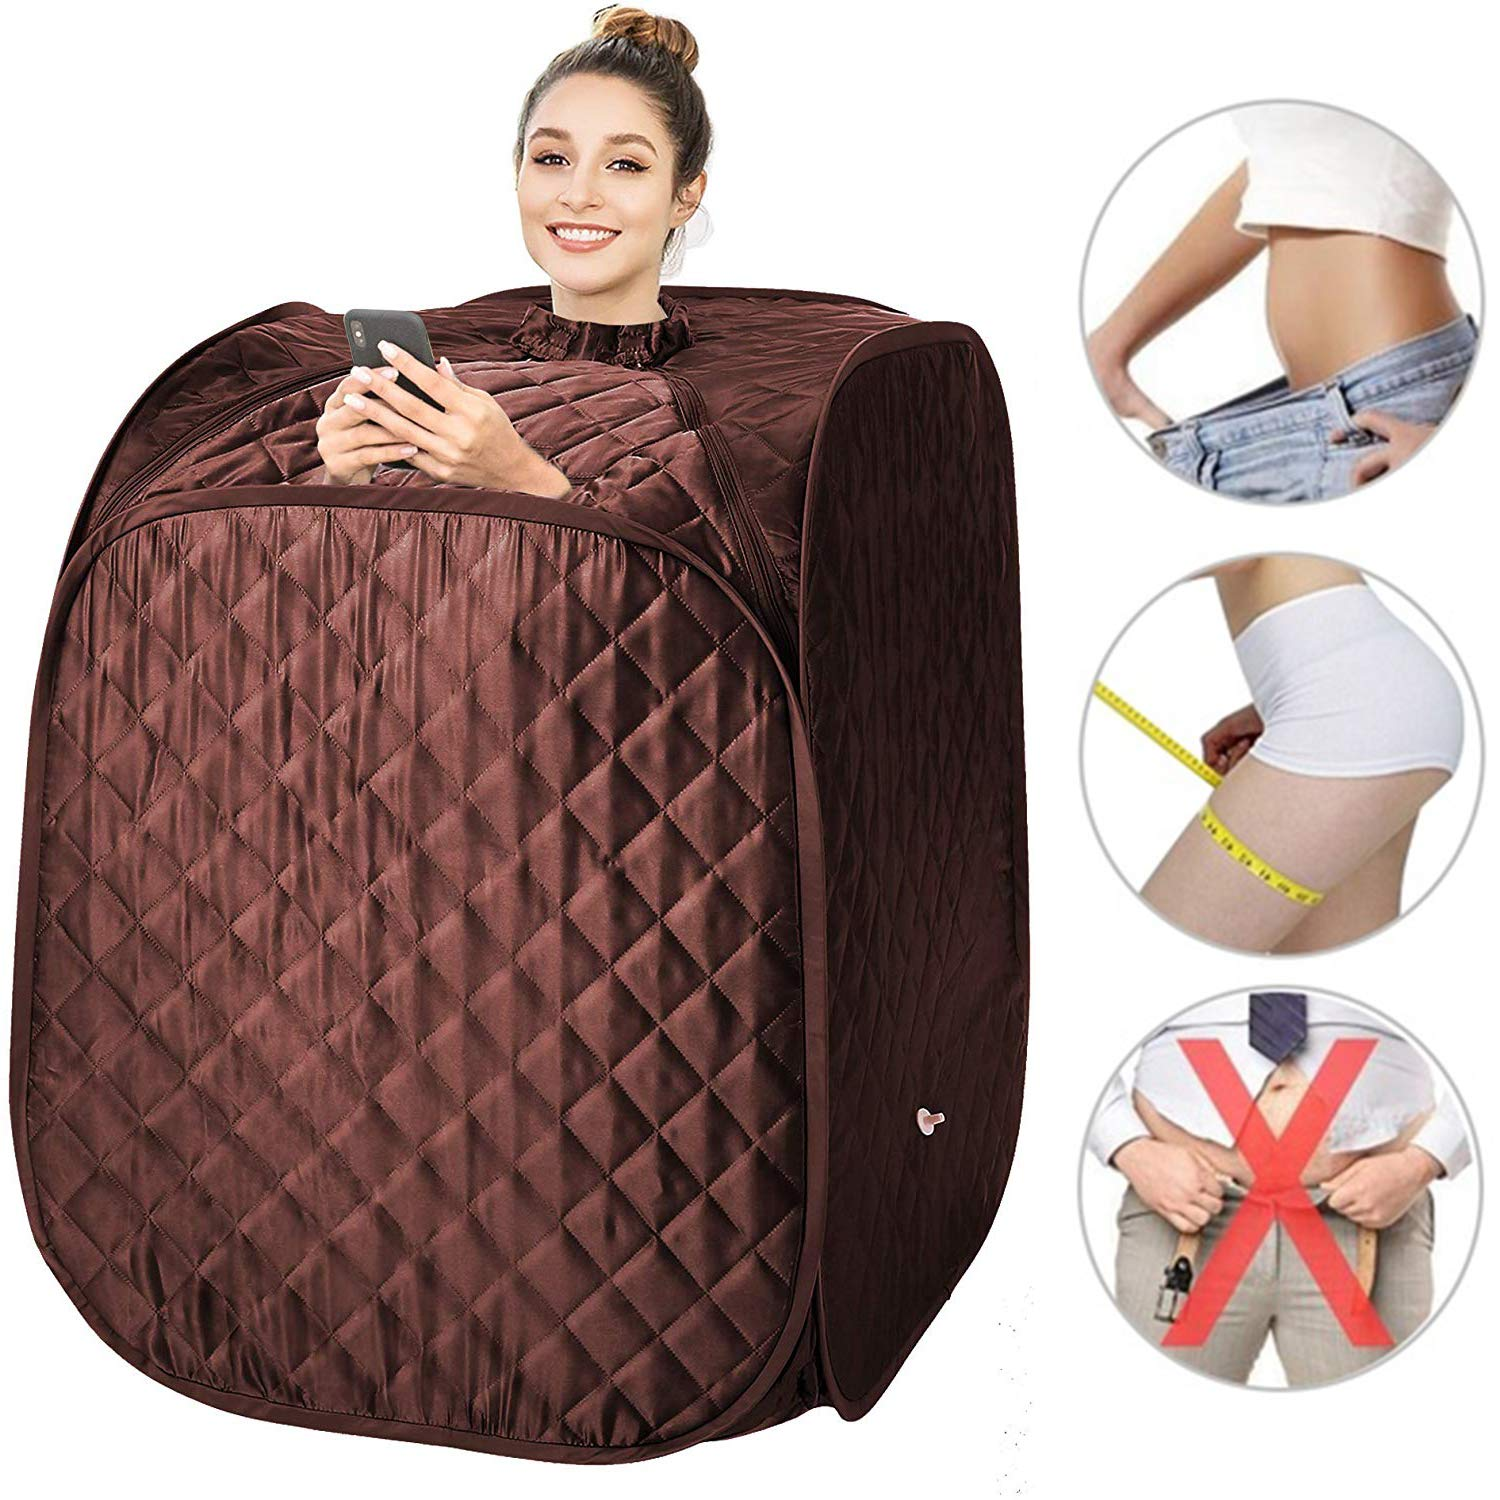 pardise 2L Portable Steam Sauna, Folding Personal Home Sauna Spa Tent Slim Weight Loss Detox Therapy, One Person Sauna with Remote Control,Timer, Foldable Chair US Plug Coffee